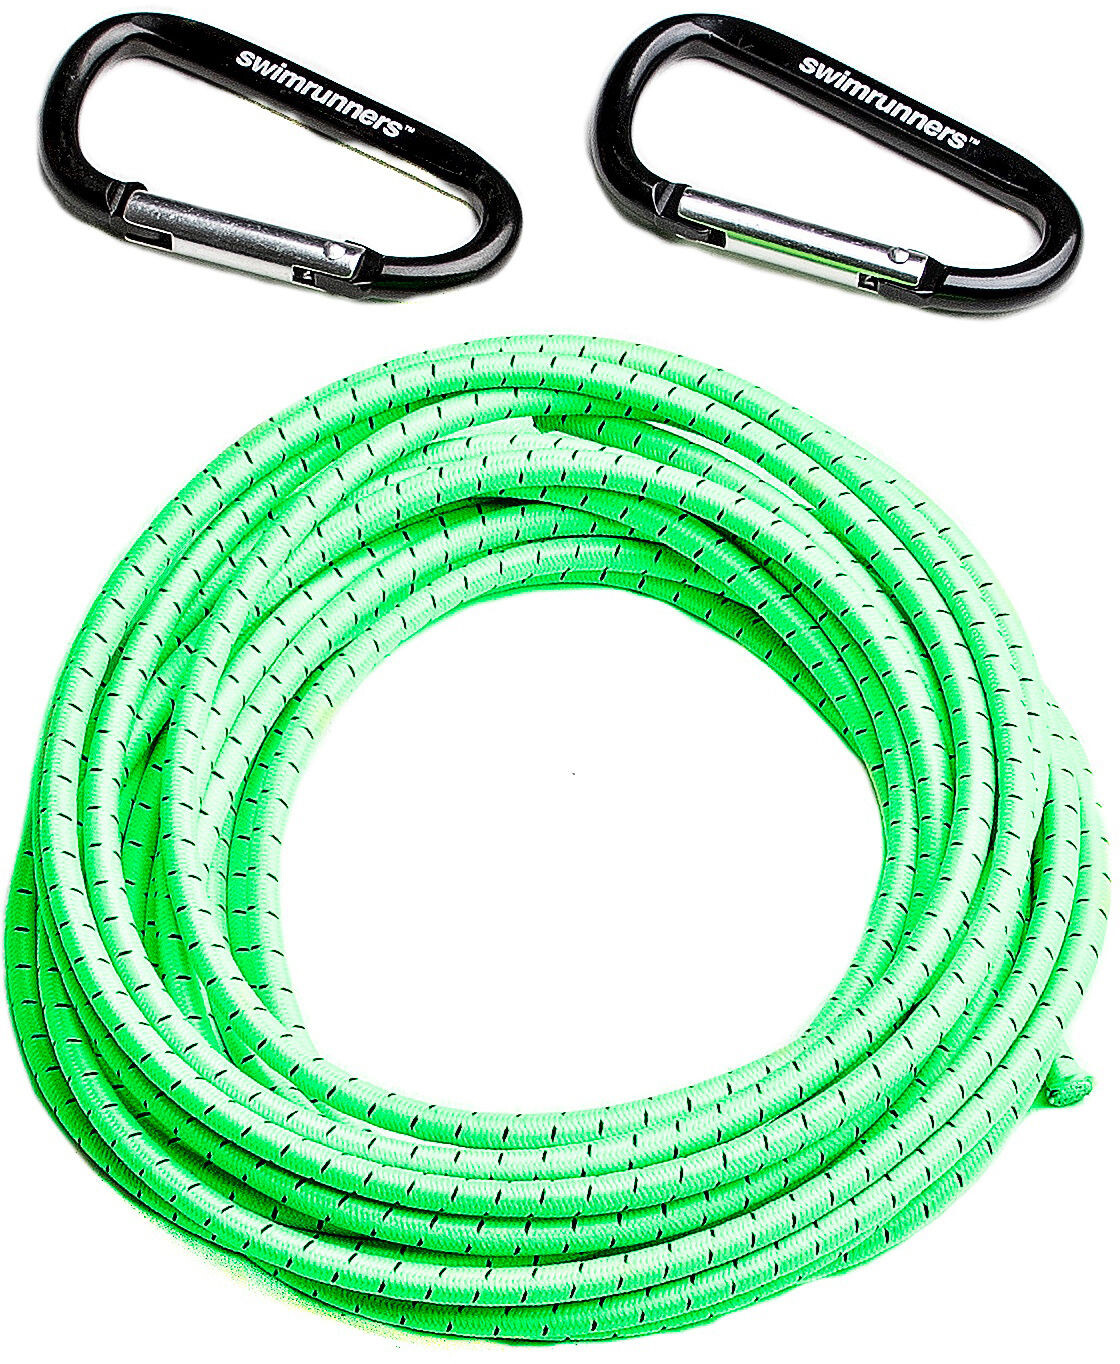 Swimrunners Support Pull Belt Cord DIY 5m, neon green (2019) | misc_clothes